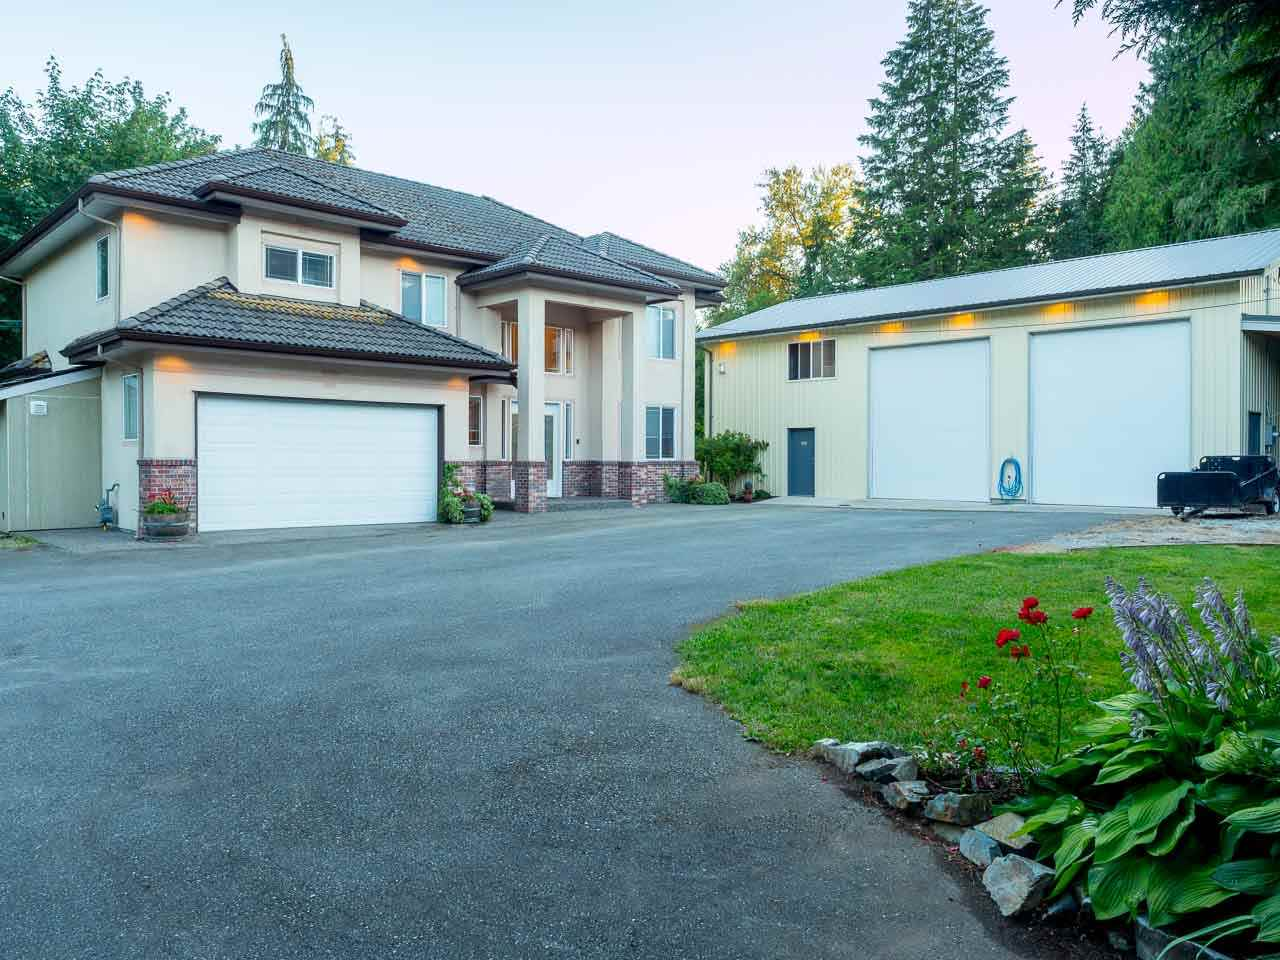 30352 DEWDNEY TRUNK ROAD, 5 bed, 3 bath, at $1,199,000